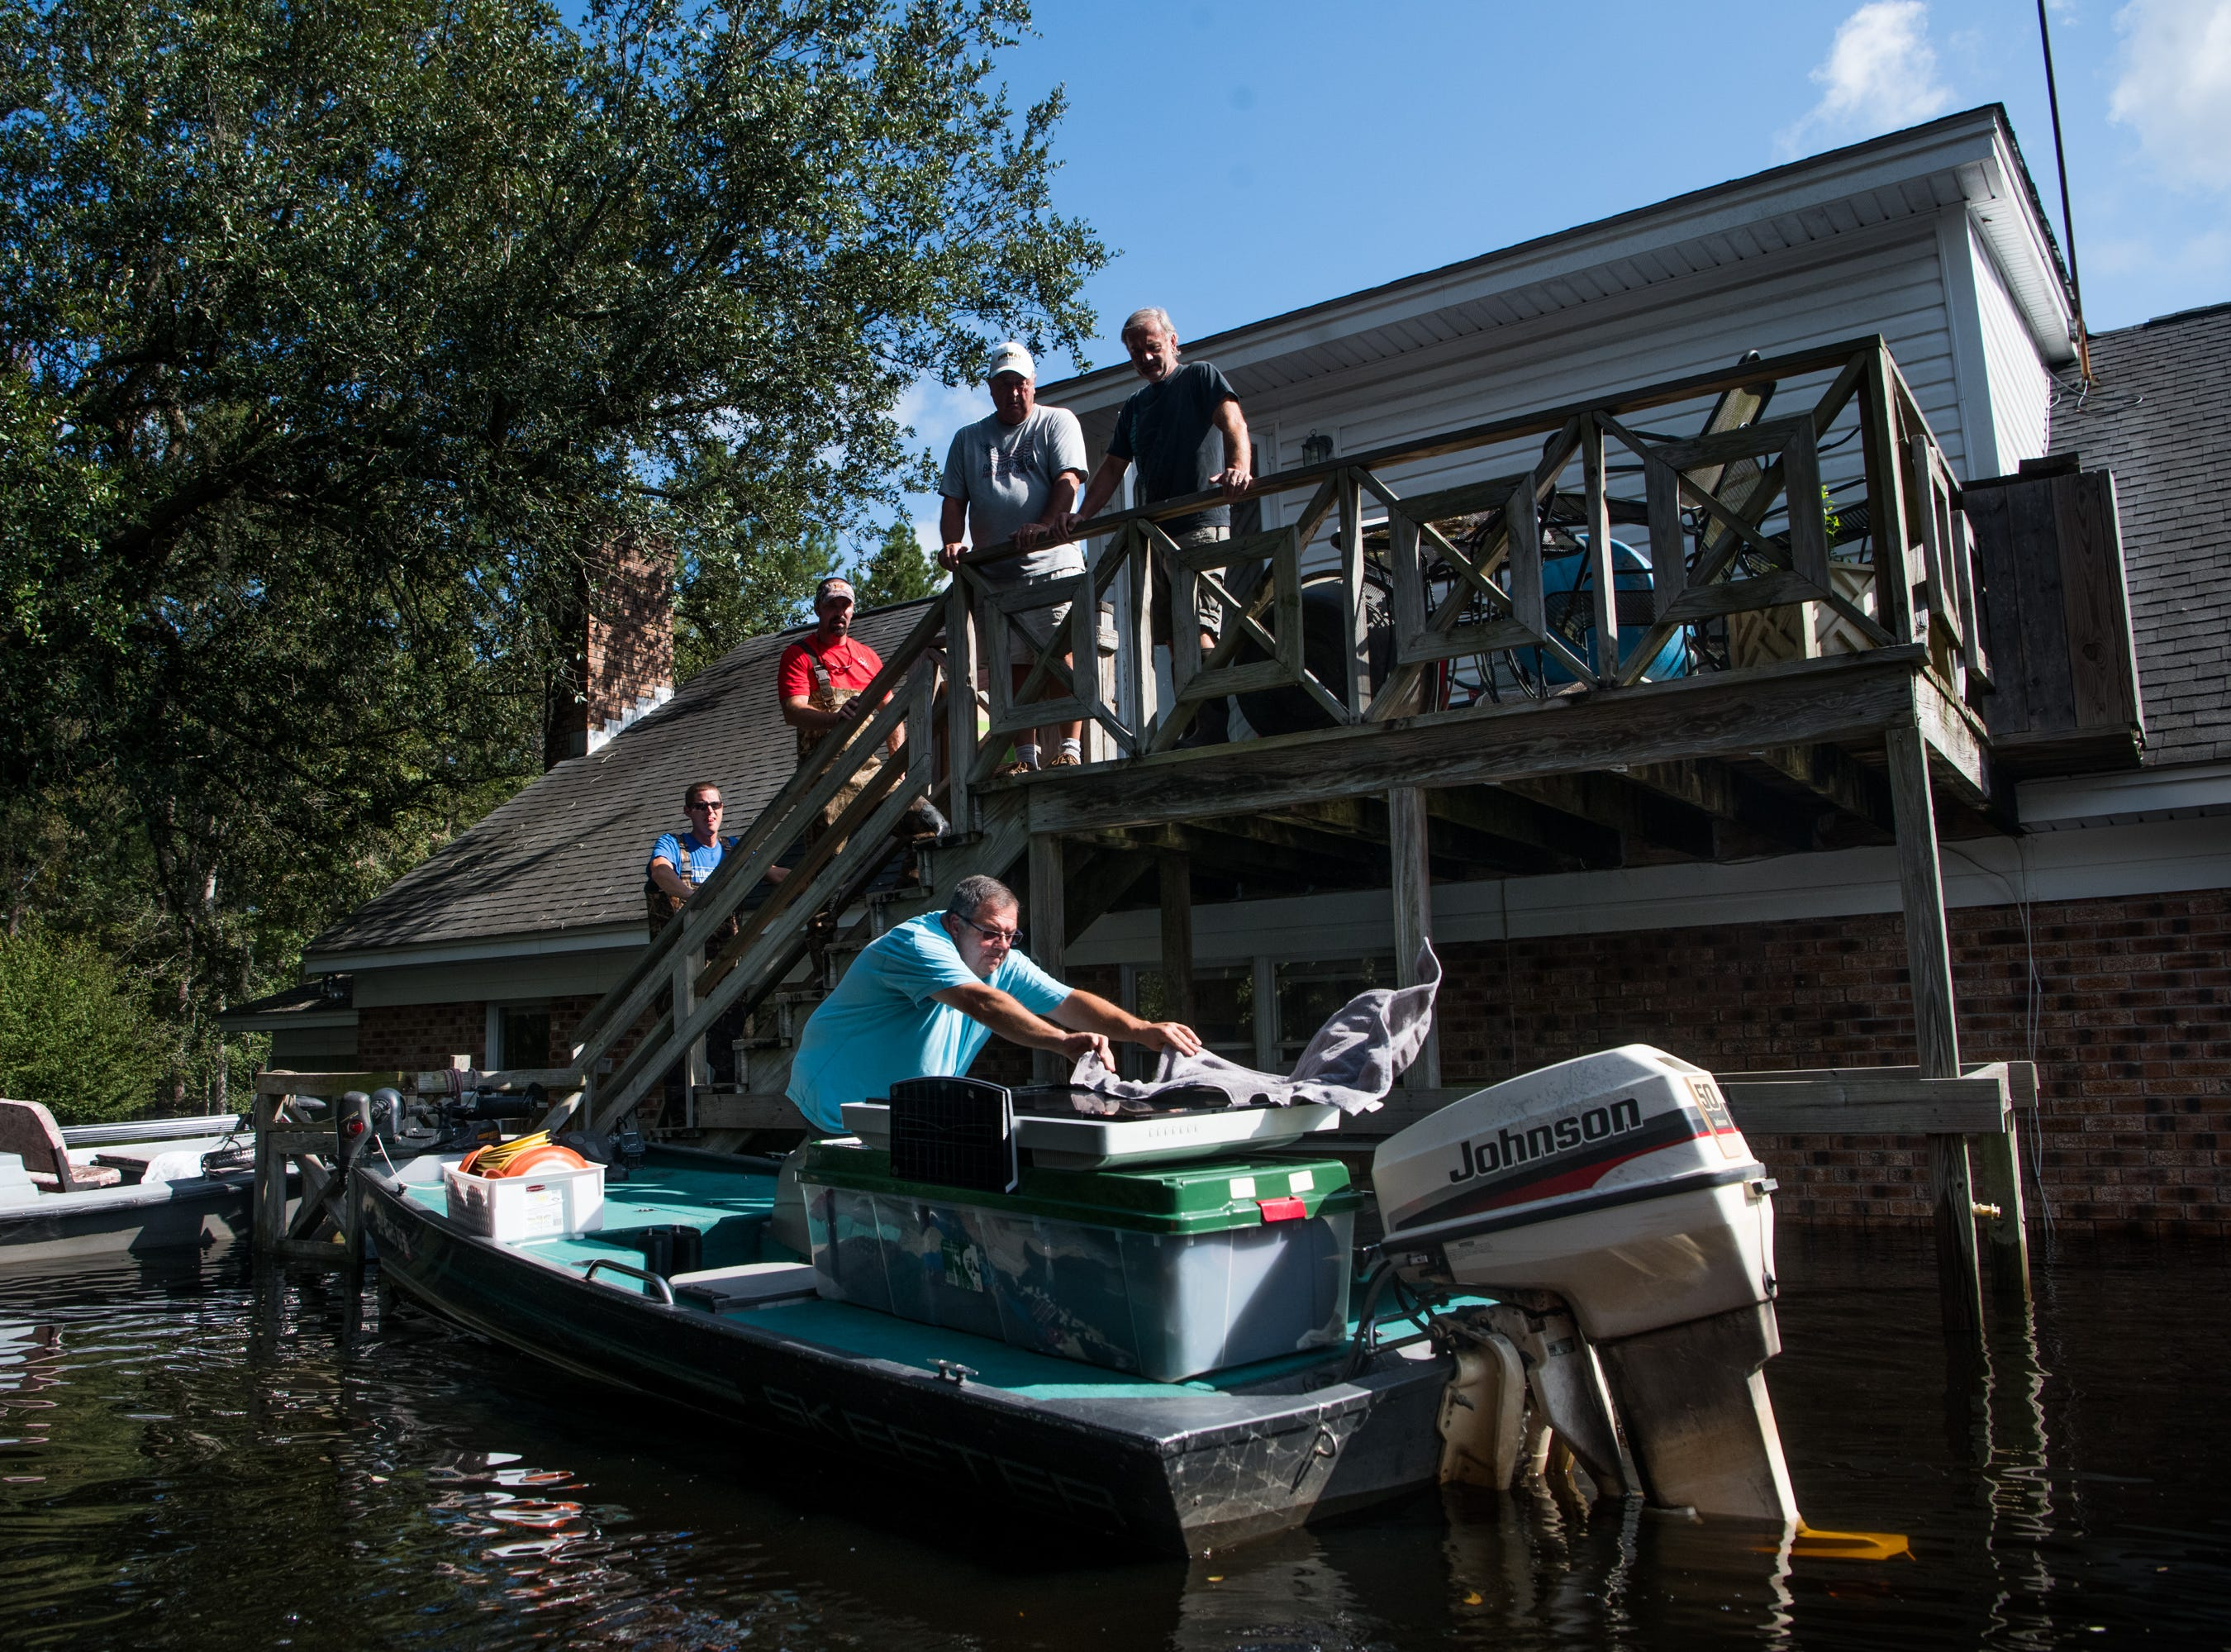 People use boats to rescue valuables from a home inundated by floodwaters caused by Hurricane Florence near the Waccamaw River on Sept. 23, 2018 in Conway, S.C.